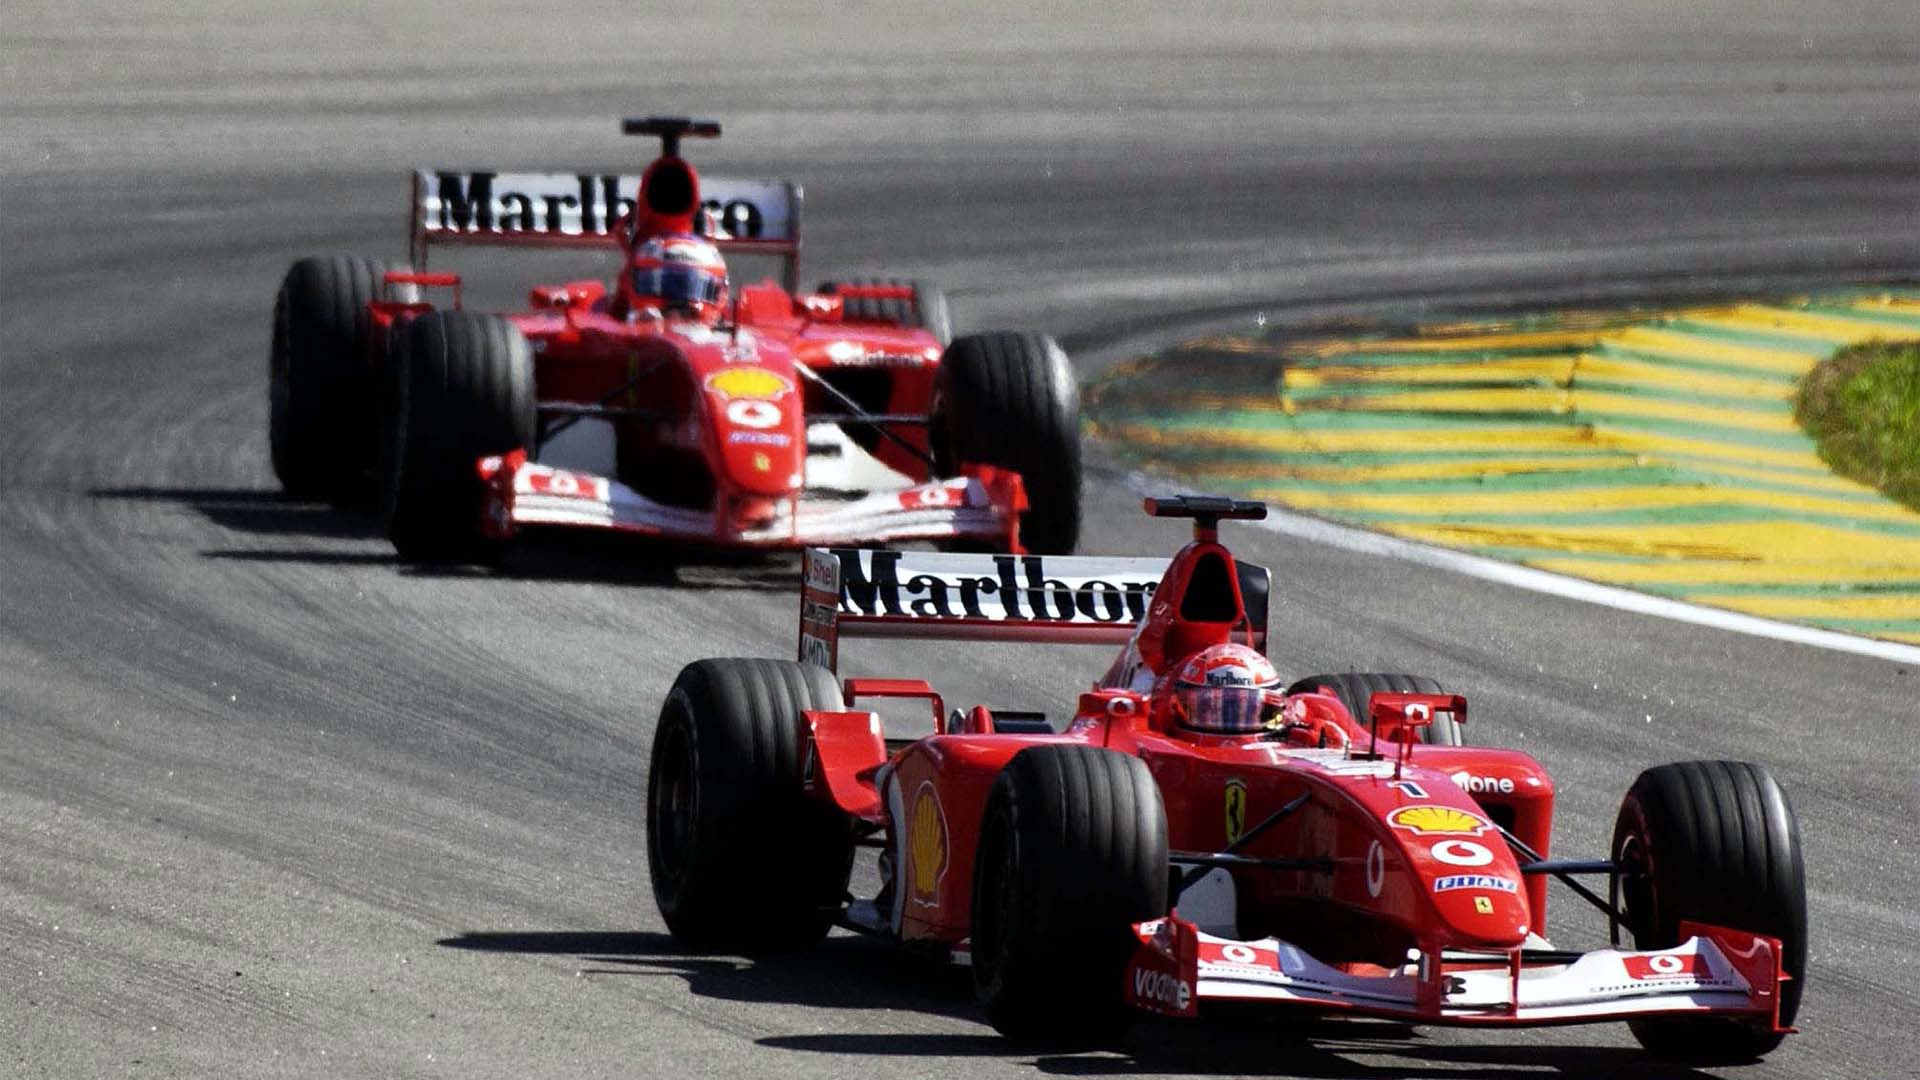 Michael Schumacher HD Wallpaper (1920x1080) | F1-Fansite.com